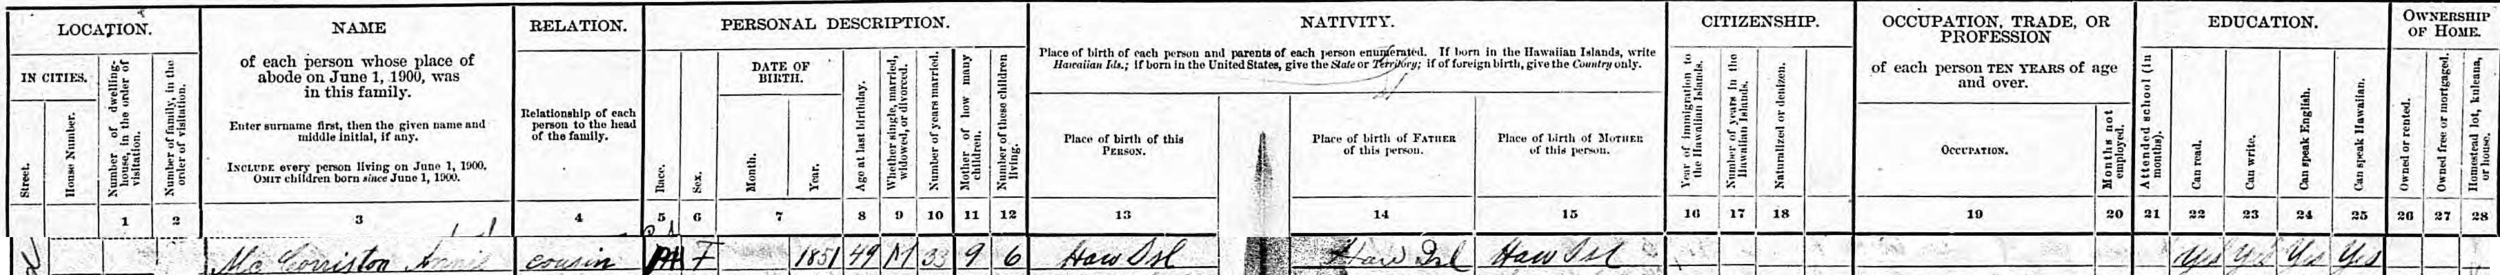 Image 1. Extract of the 1900 U.S. Census citing Annie McCorriston in the household of [Elizabeth] Morehead. June 2, 1900.